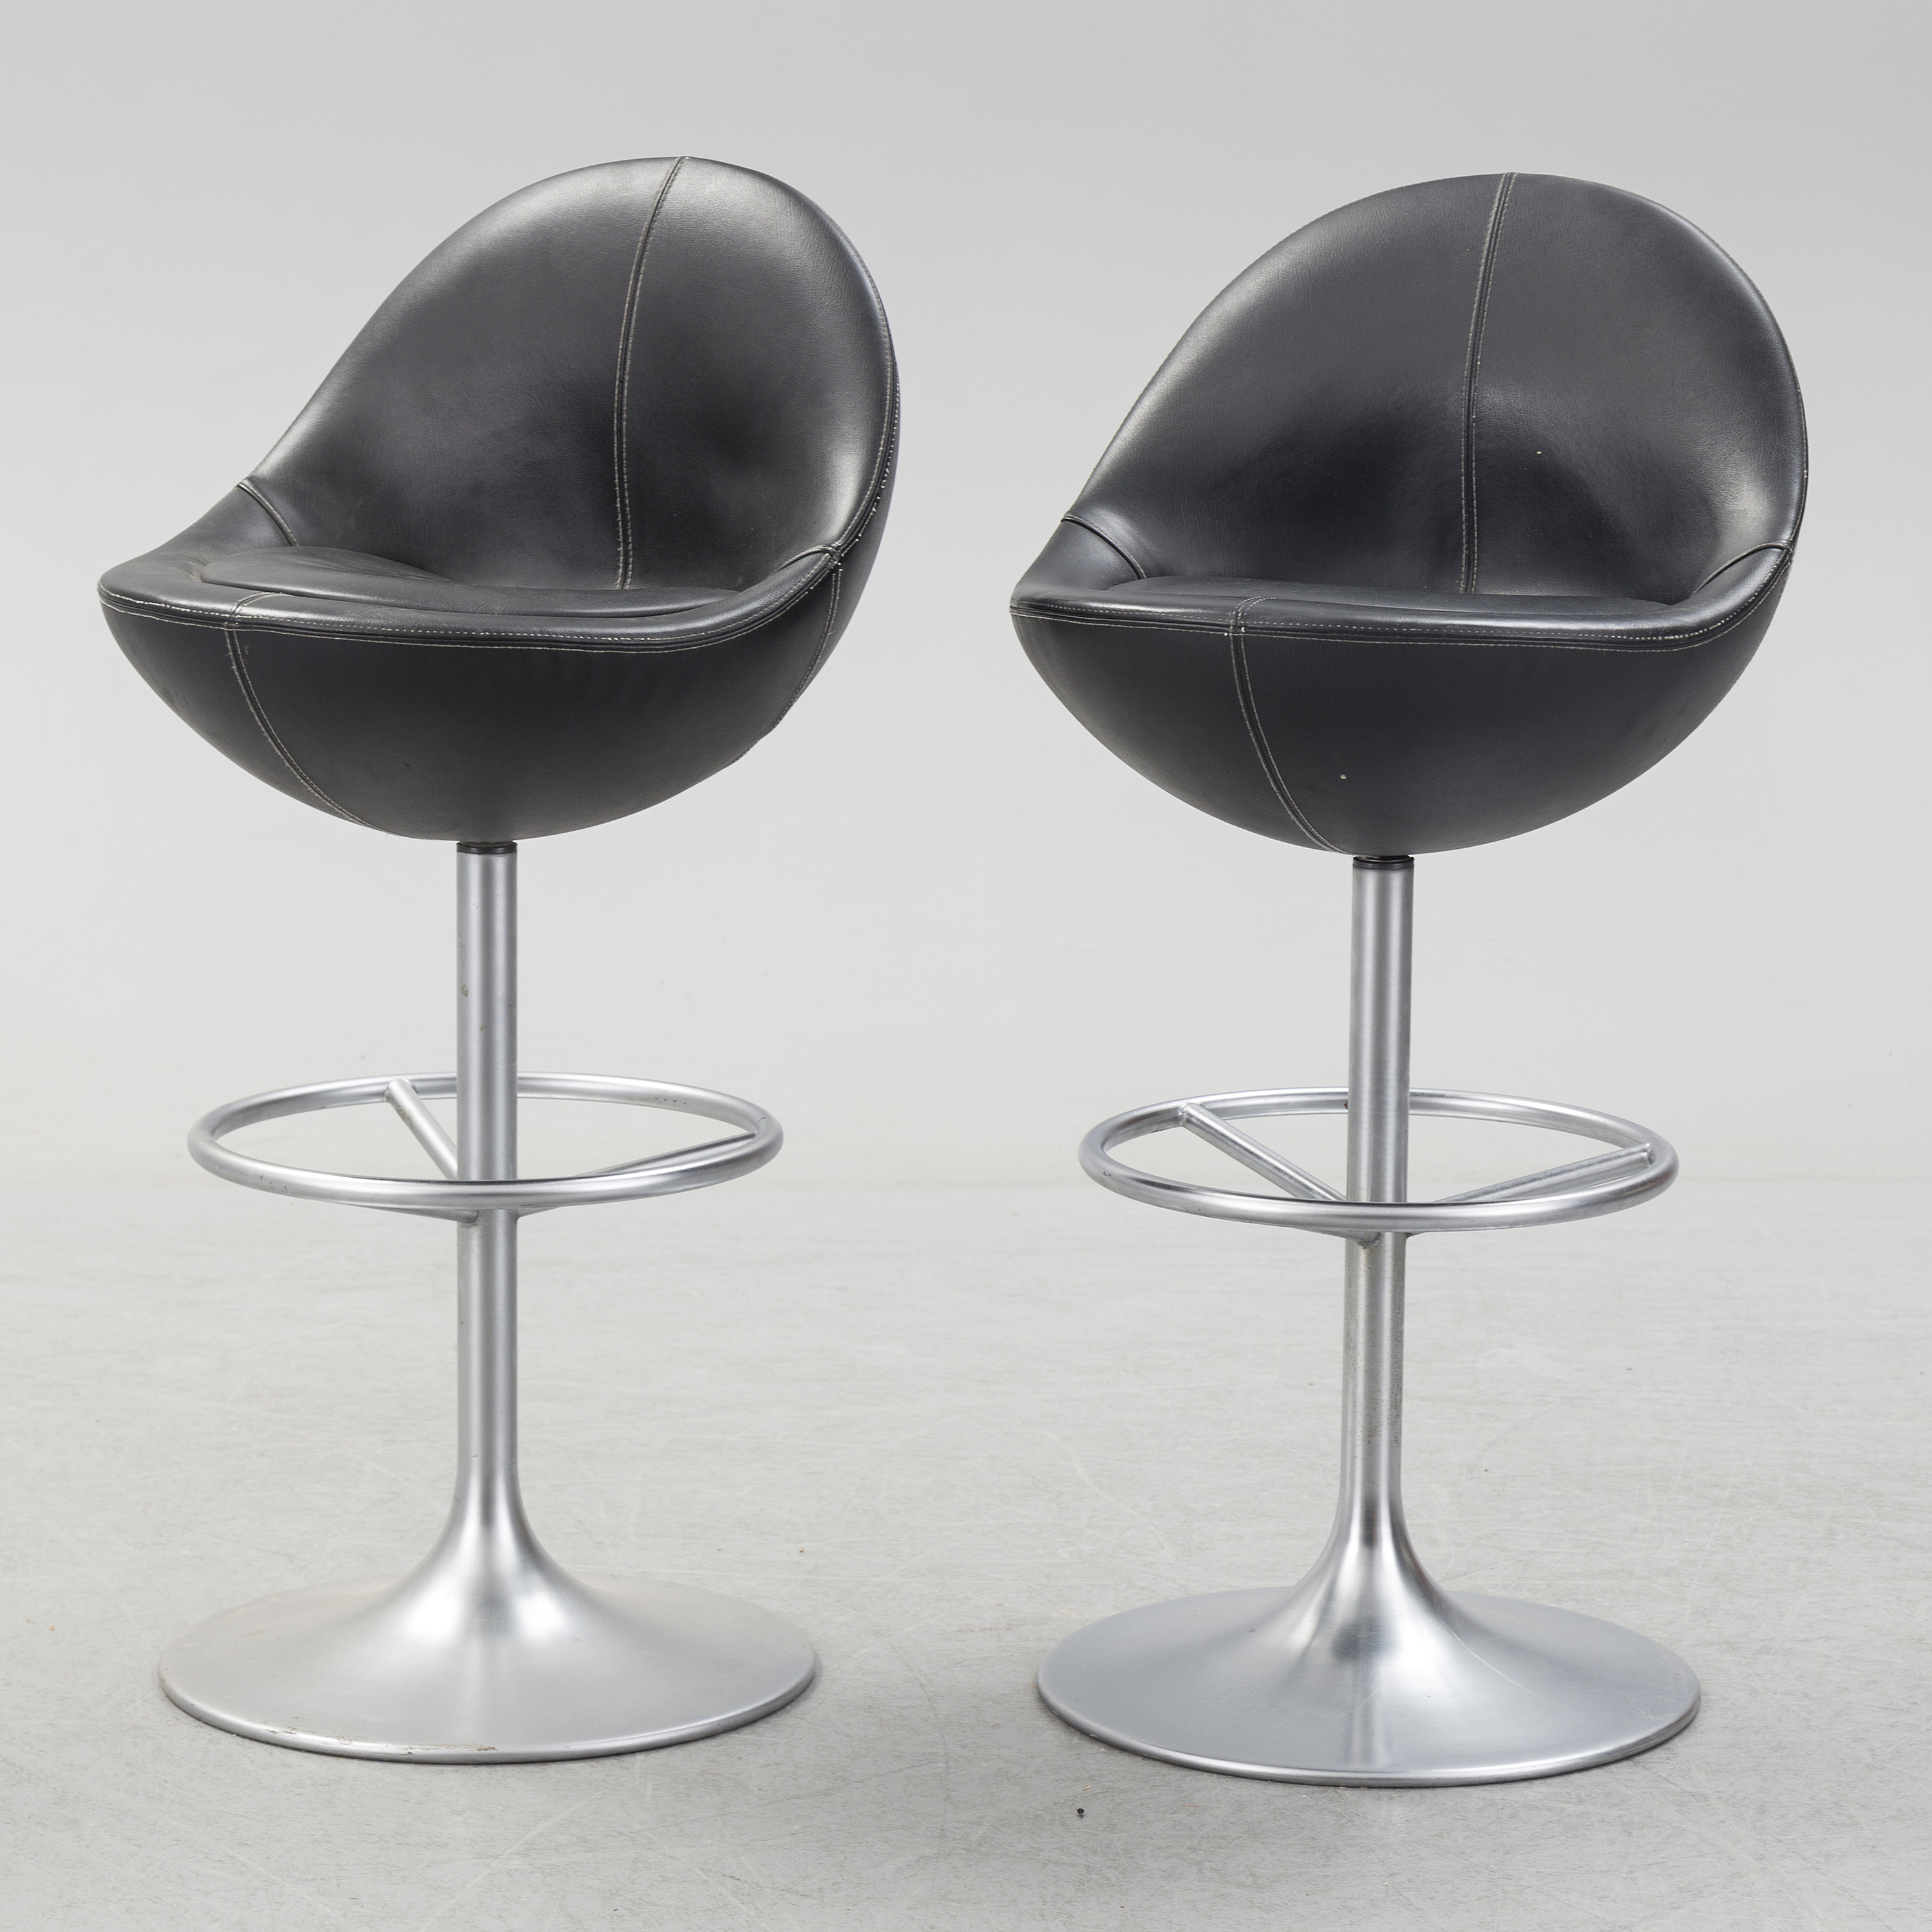 Excellent Six Venus Barstools By Johansson Design Circa 2000 Beatyapartments Chair Design Images Beatyapartmentscom